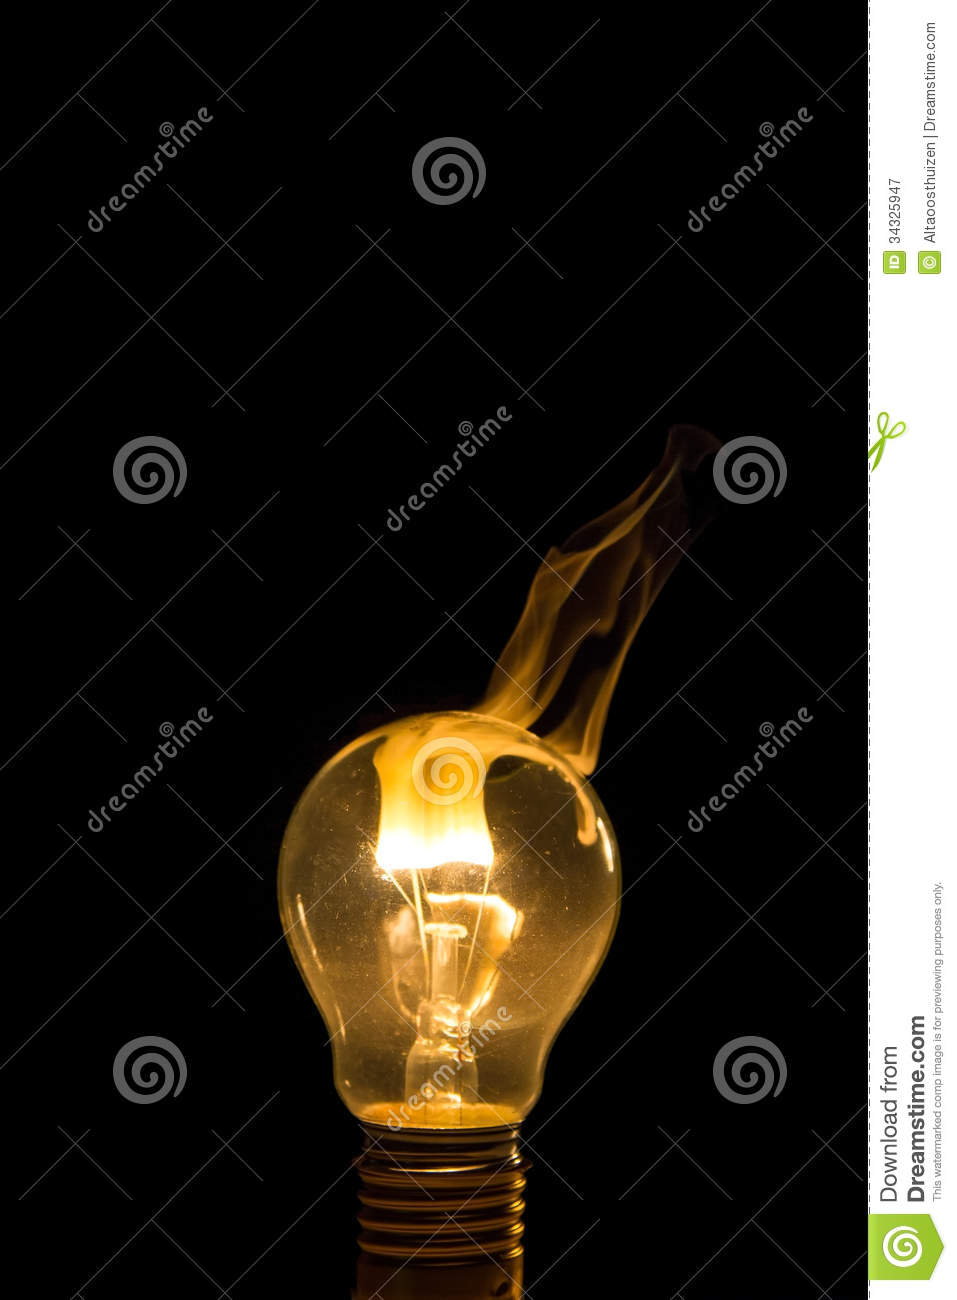 Broken Light Bulb Burn Out With Flame Stock Image - Image of